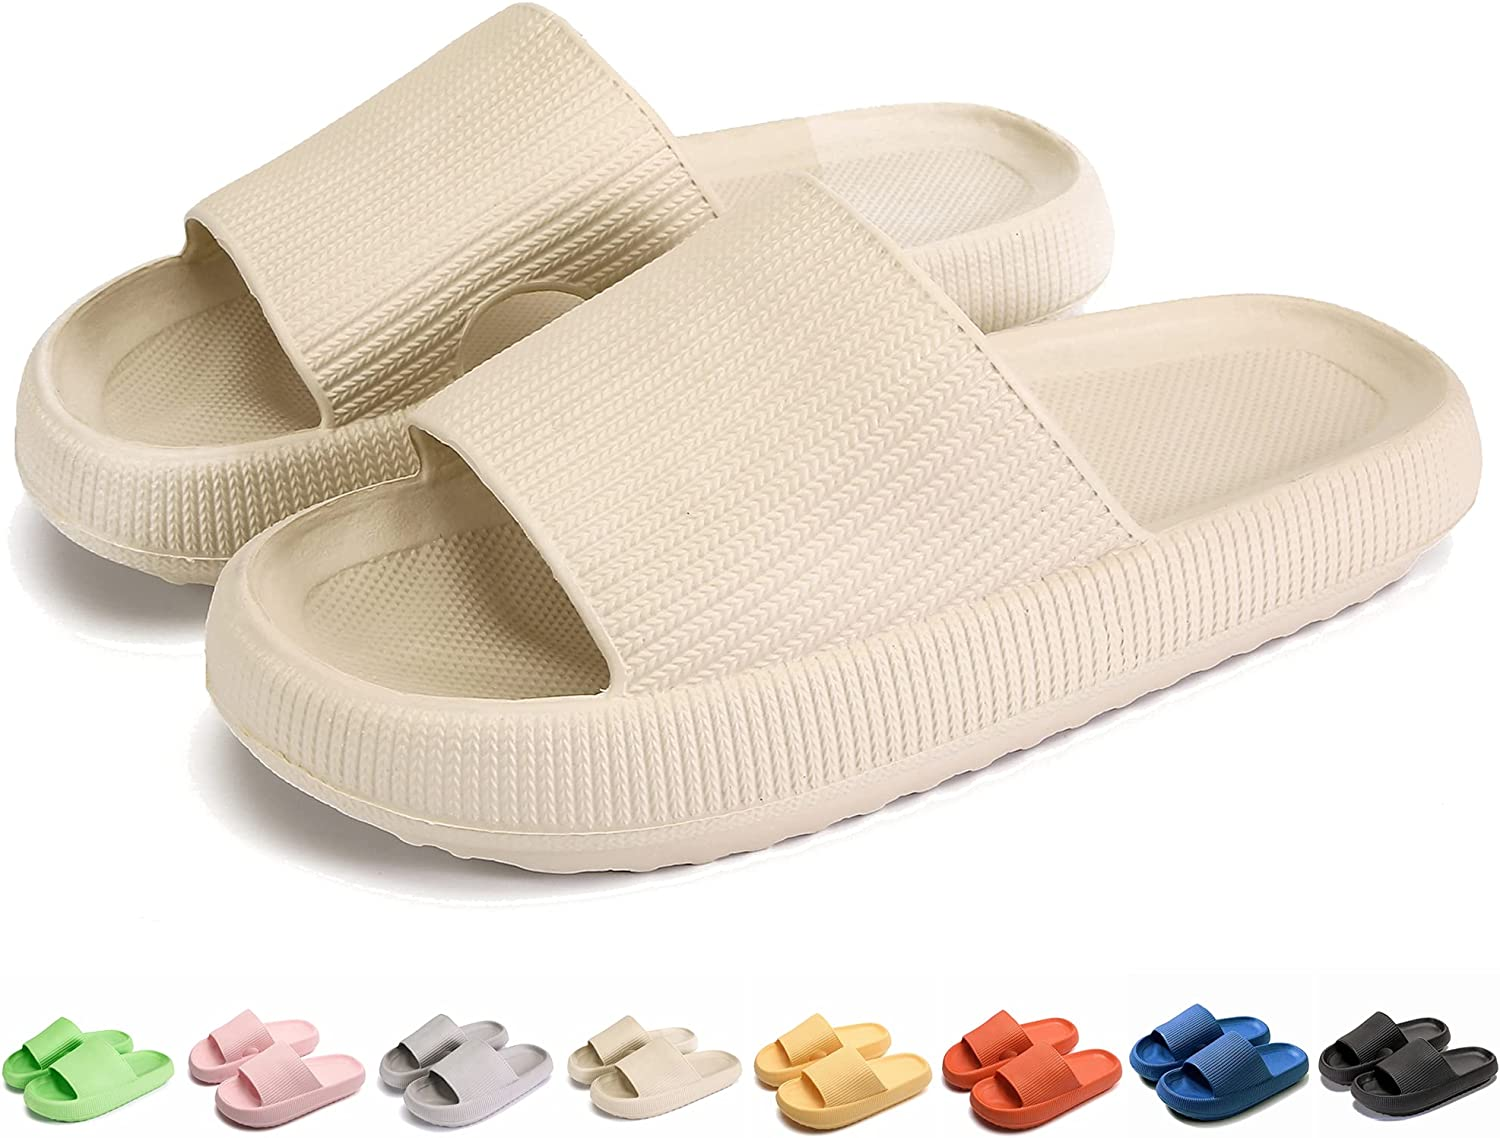 Pillow Slides Slippers, Non-Slip Quick Drying Super Soft Thick Sole Massage Cushioned Open Toe Sandals, EVA Platform Shoes Summer Pool Gym Shower Bathroom Slipper Home Slippers for Women and Men…